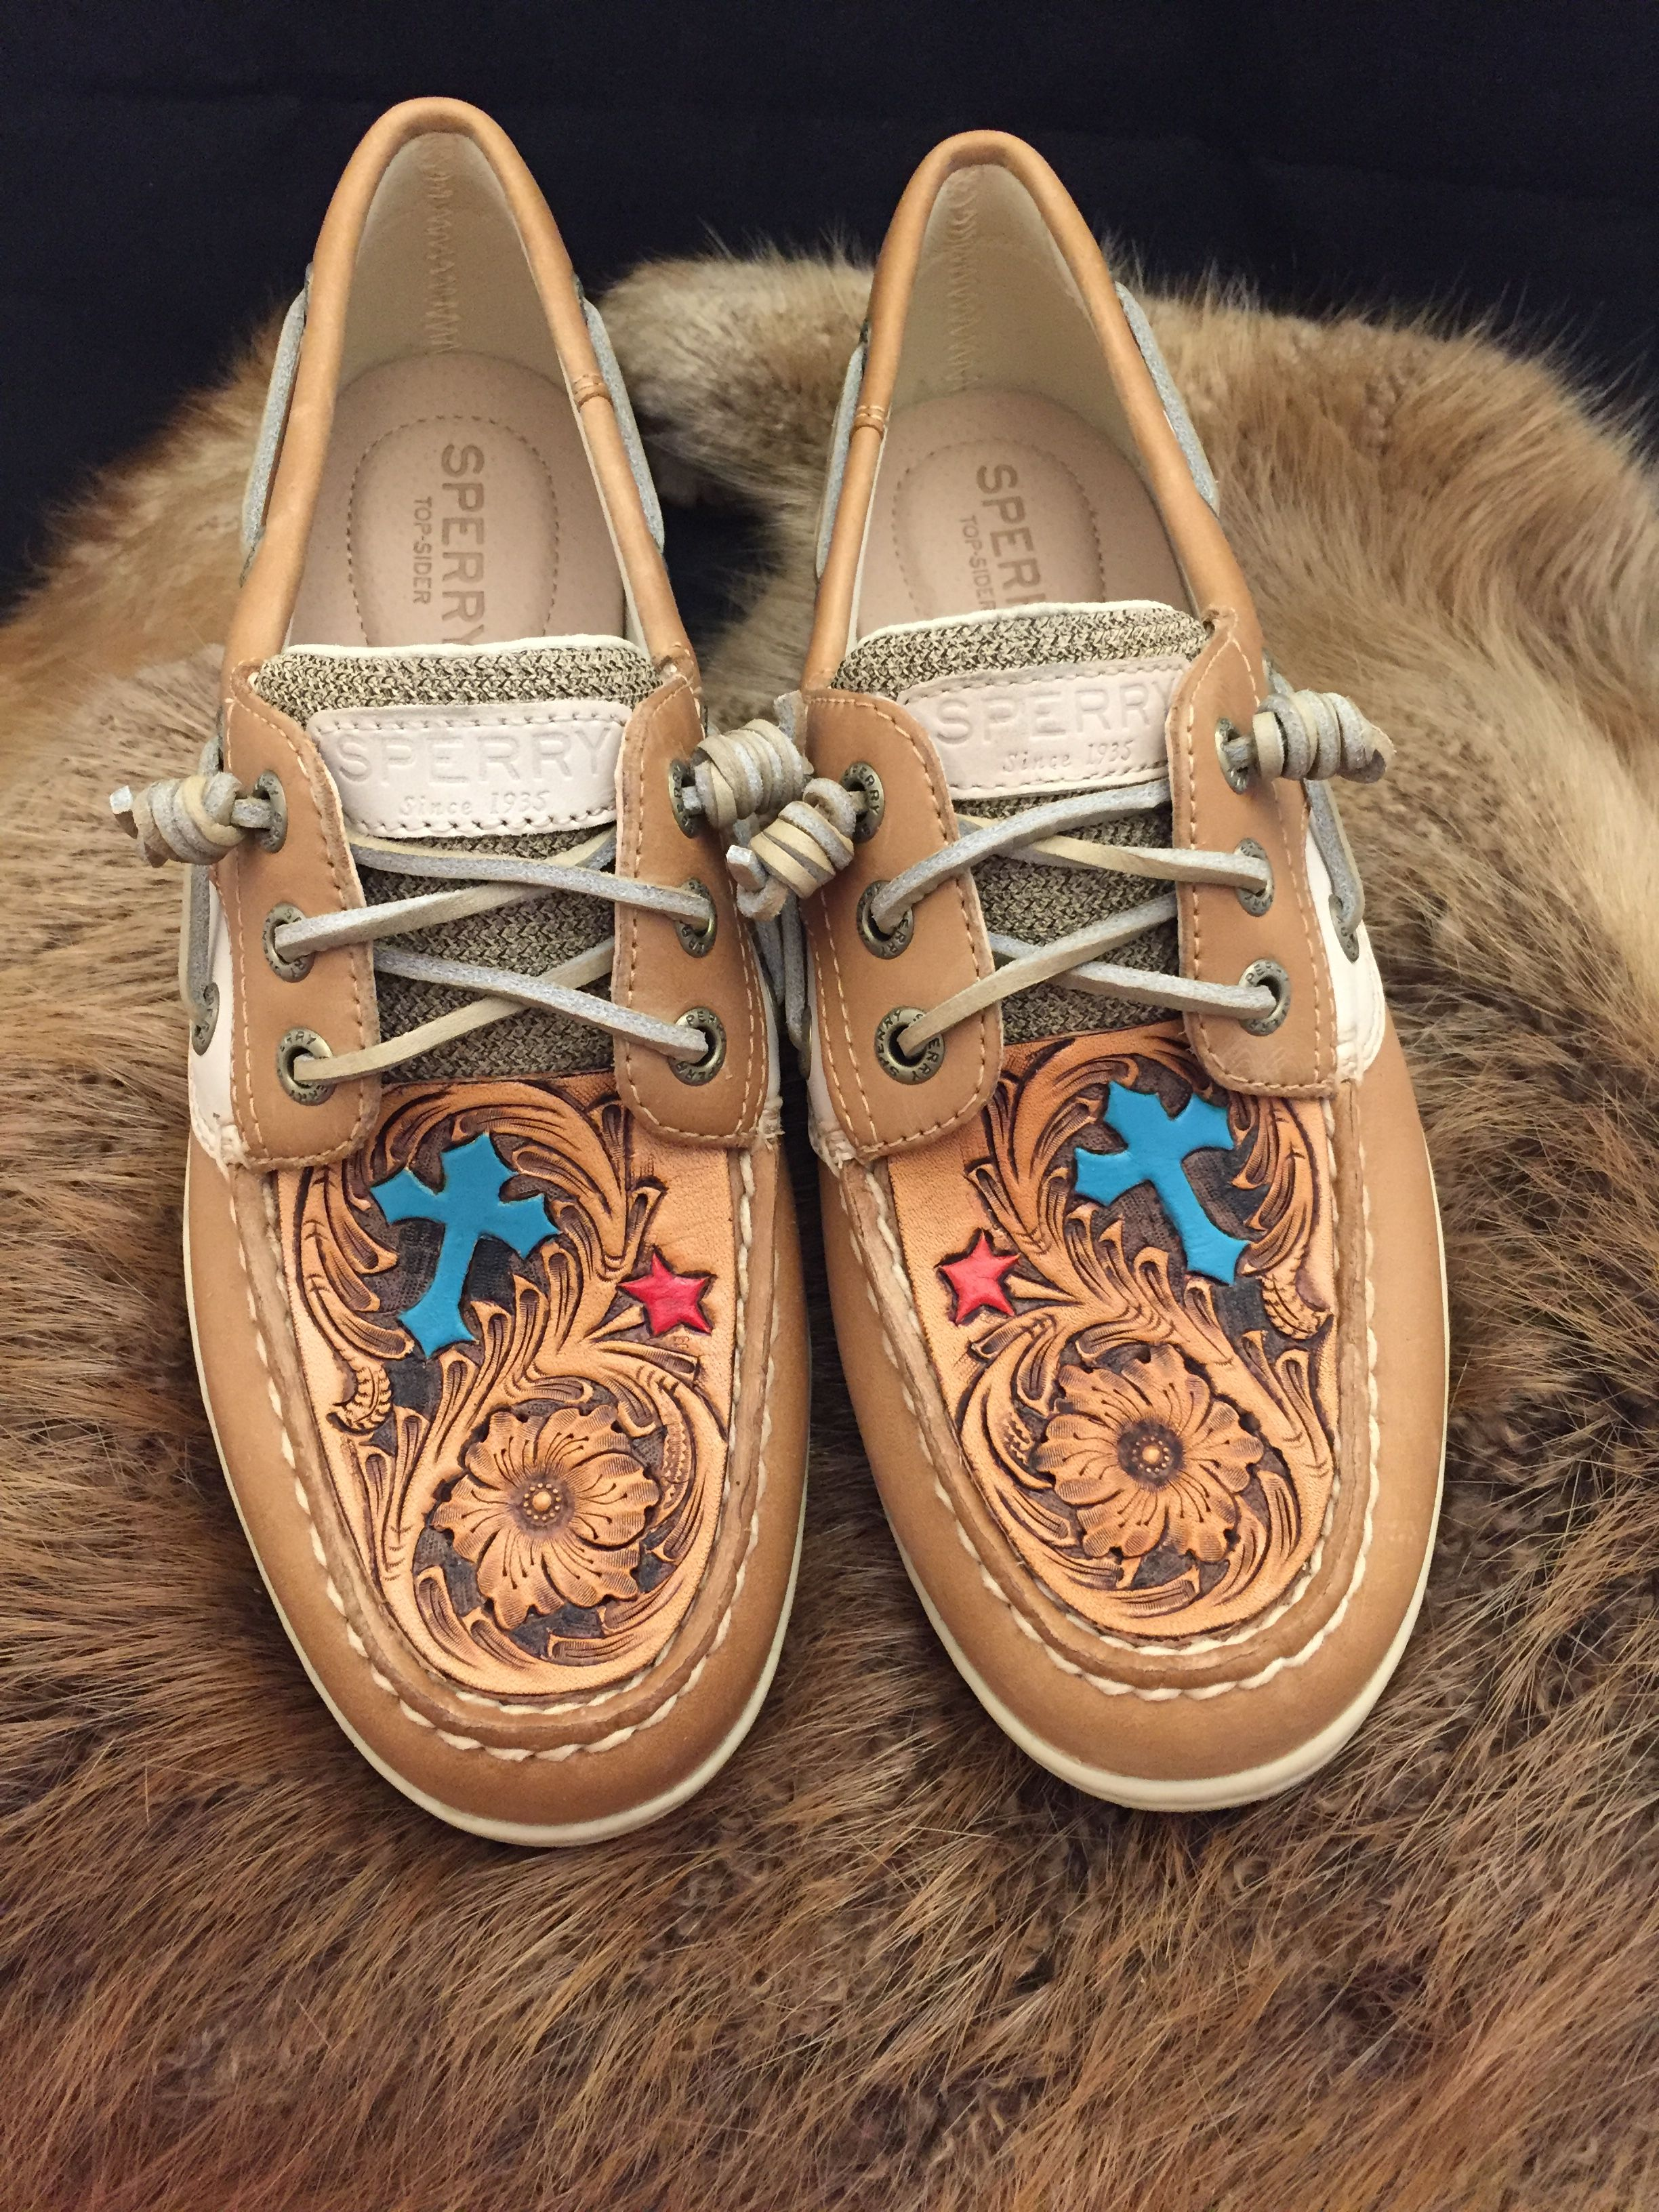 28ad92c759 Hand Tooled Sperrys Available at Martinez Custom Leather or visit our  Facebook page  martinezcustomleathergoods